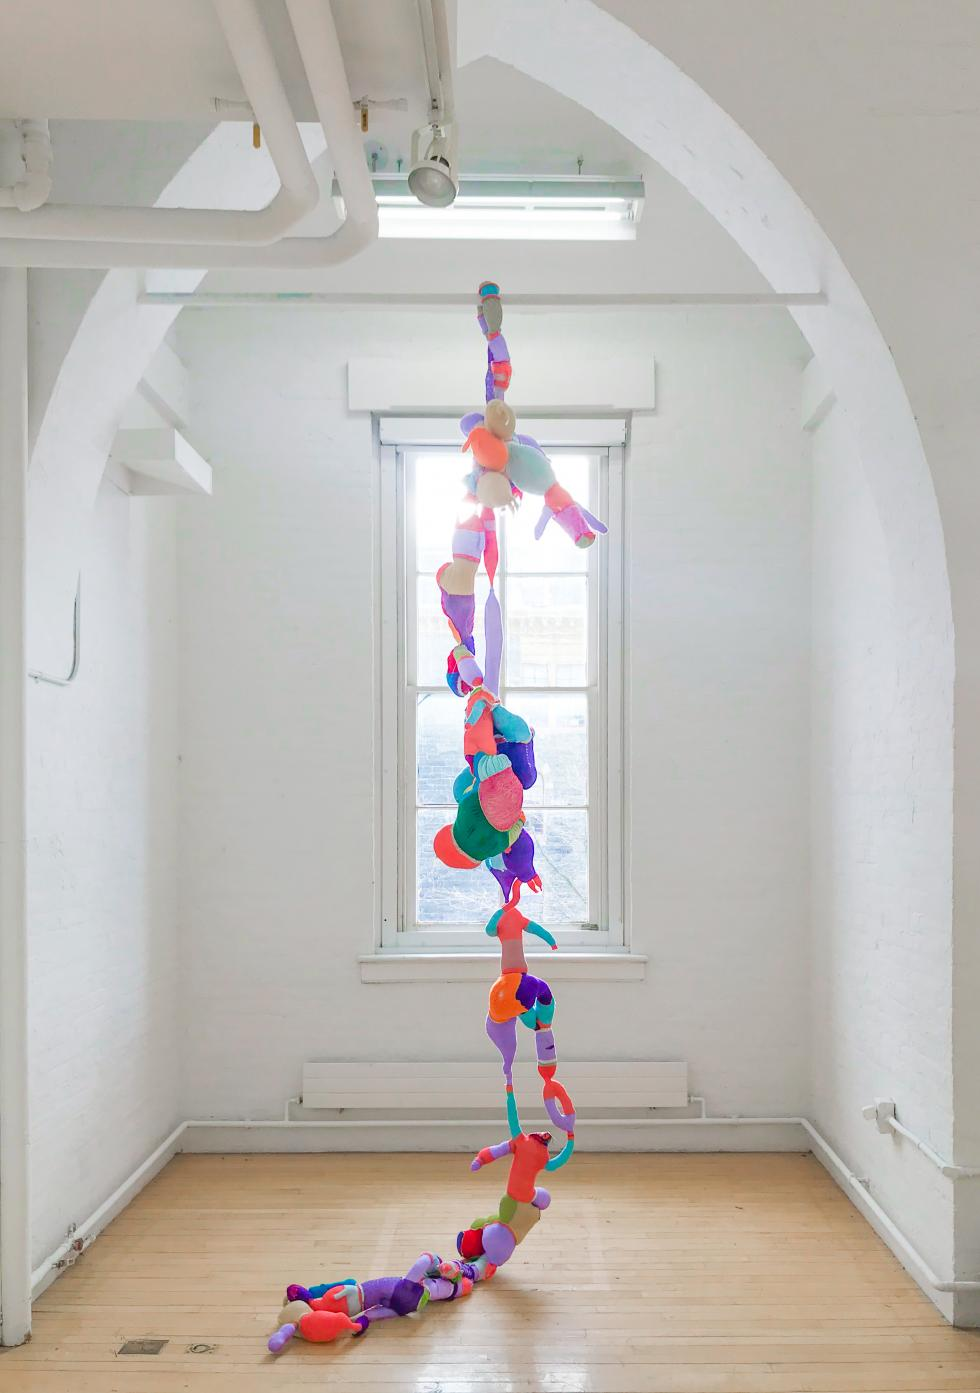 Colorful fabric shapes sewn together and hanging from a horizontal white pole set in front of a window.